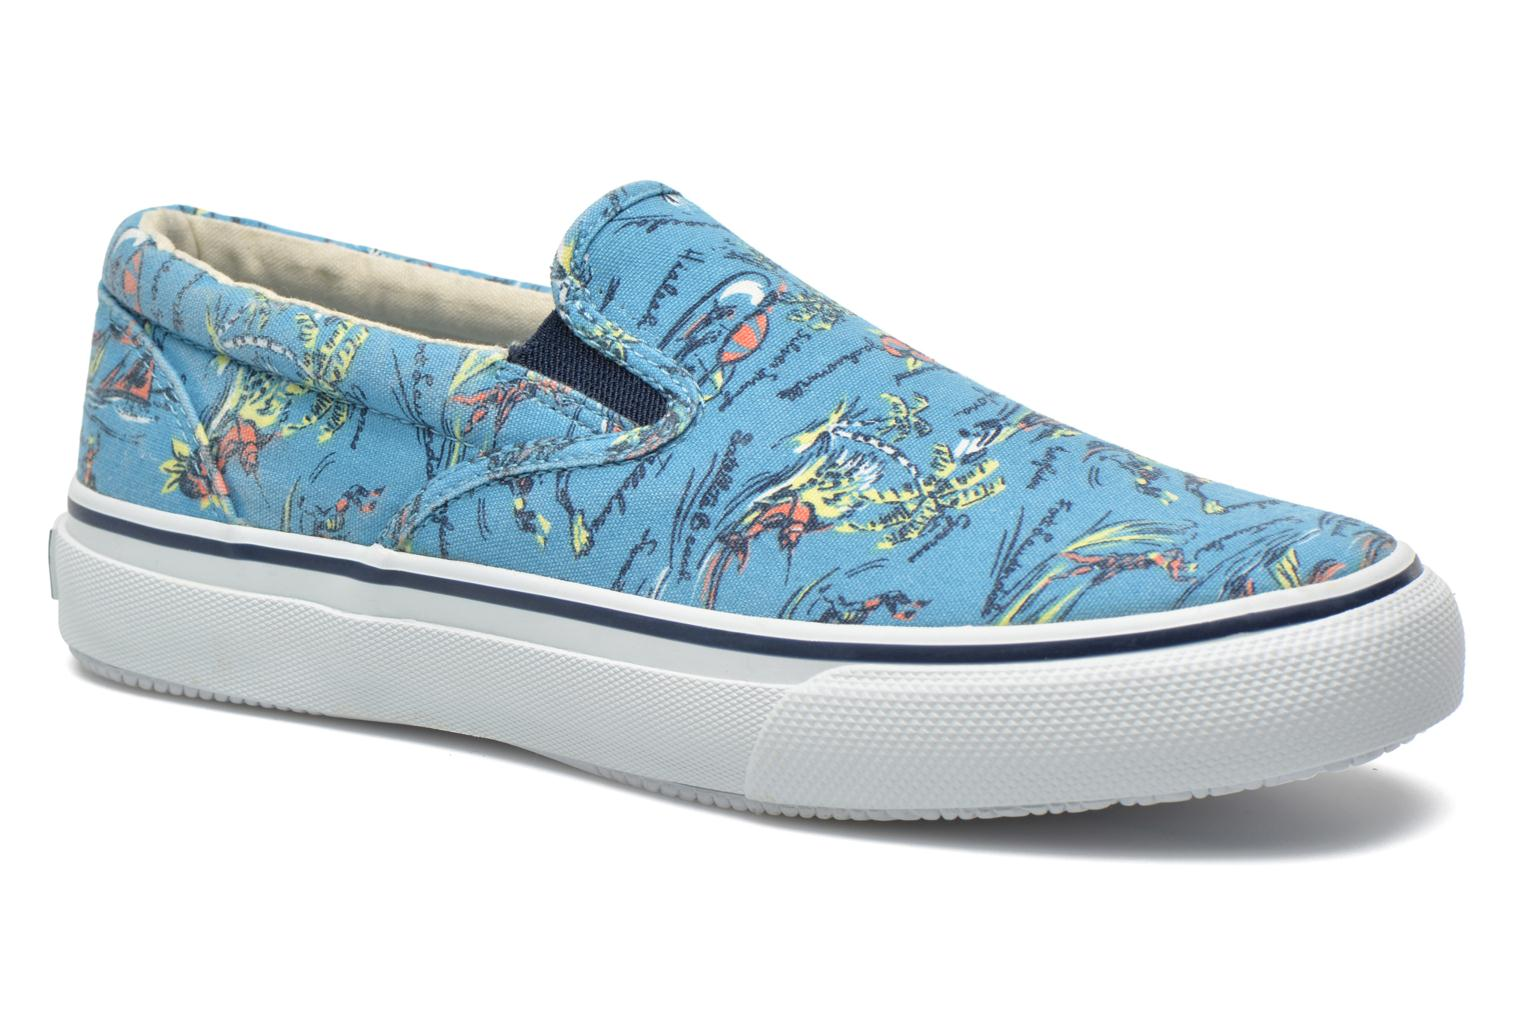 Sneakers Striper S/O Hawaiian by Sperry Top-Sider